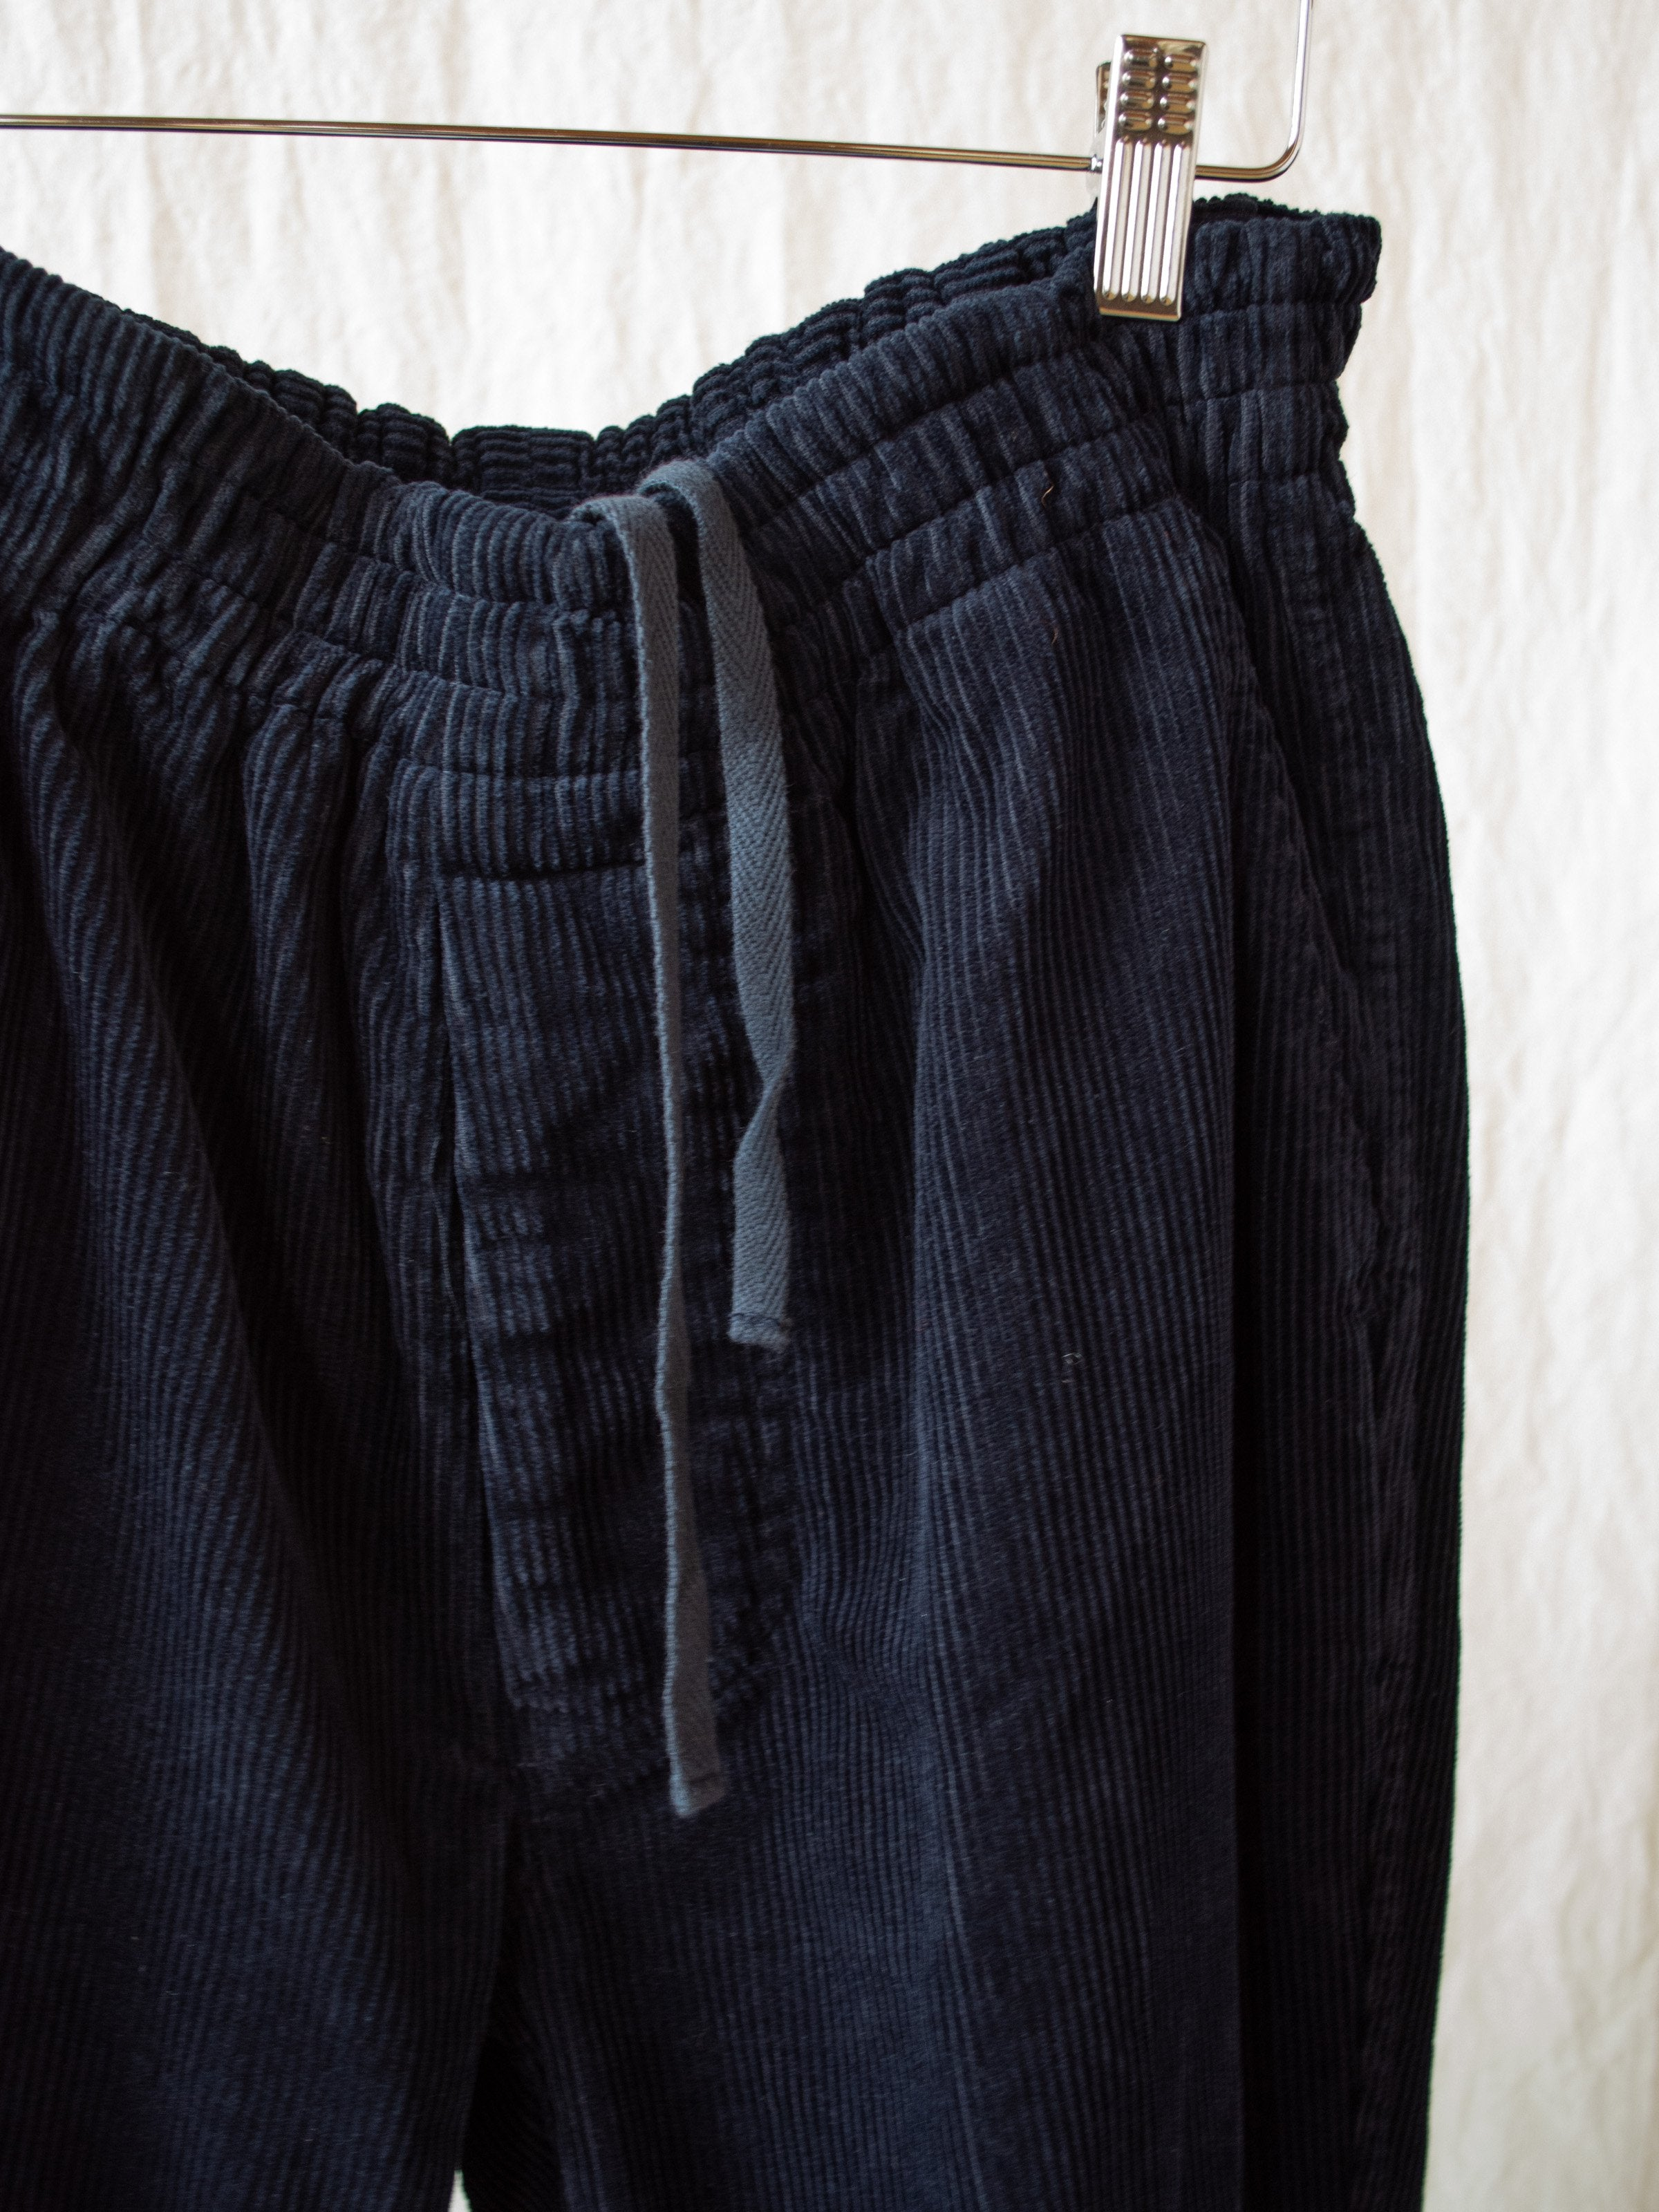 Namu Shop - Document Corduroy Pants - Navy